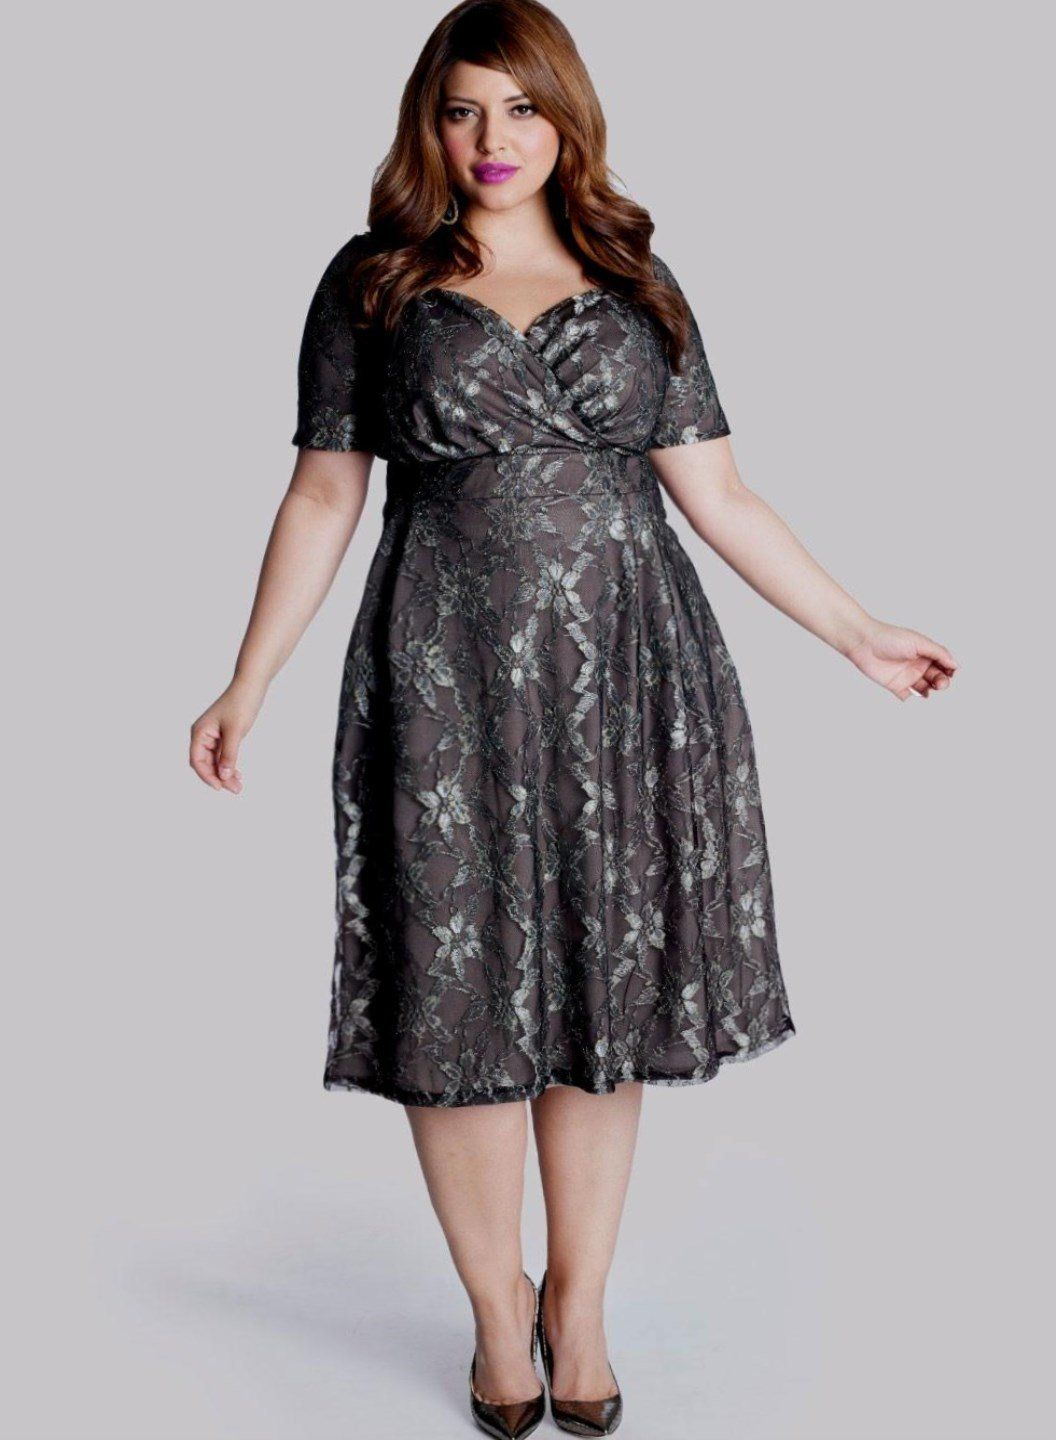 0a6172b1fae Fall Cocktail Plus Size Dresses 2018 - PlusLook.eu Collection ...